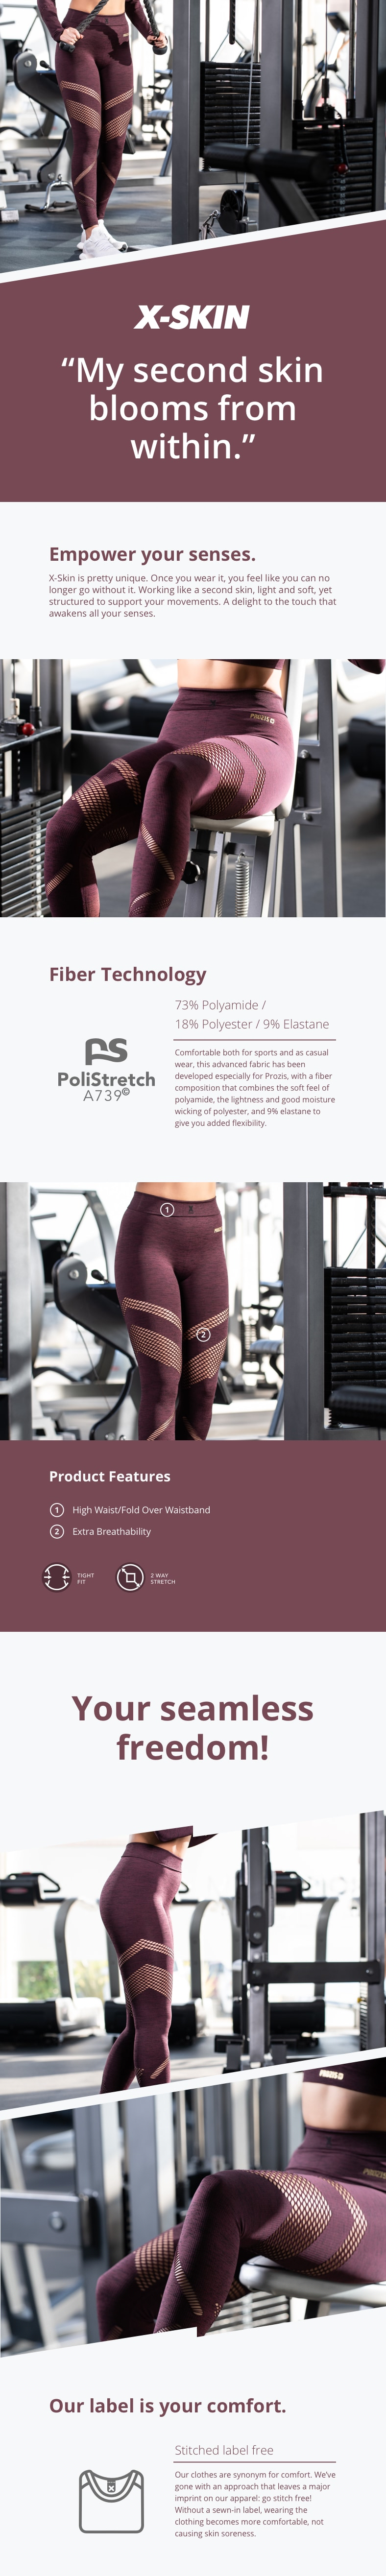 X-Skin Leggings - Cetus Maroon - description